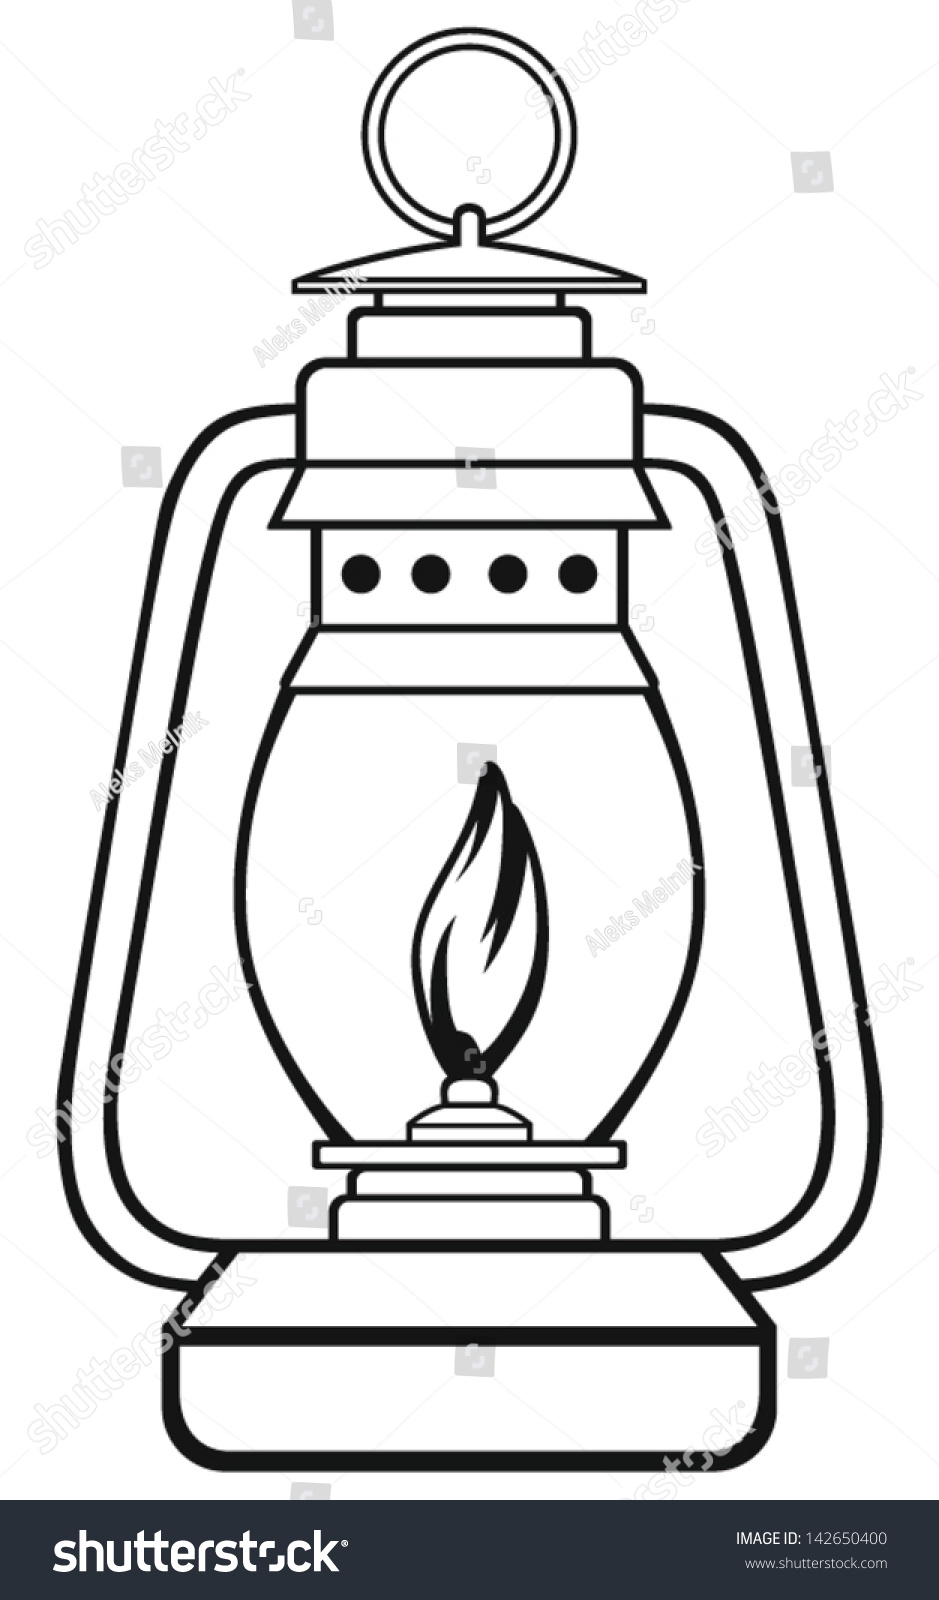 Symbol Old Dusty Oil Lamp Stock Vector 142650400 - Shutterstock for Oil Lamp Clip Art  153tgx